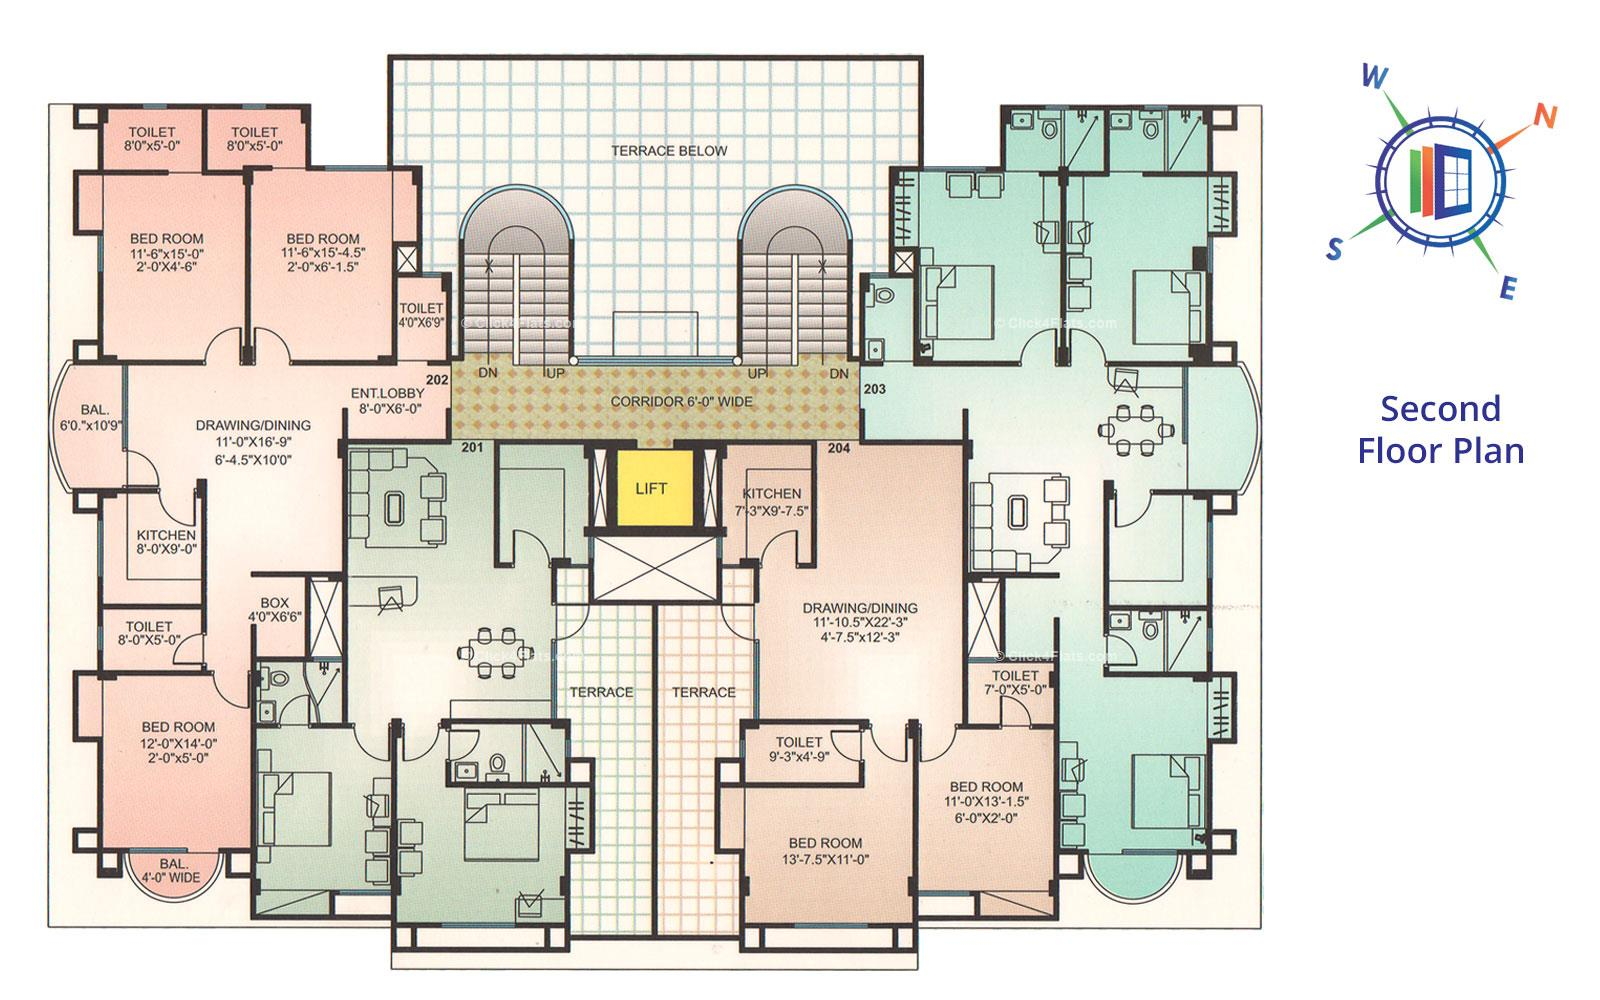 Whispering Palms Second Floor Plan